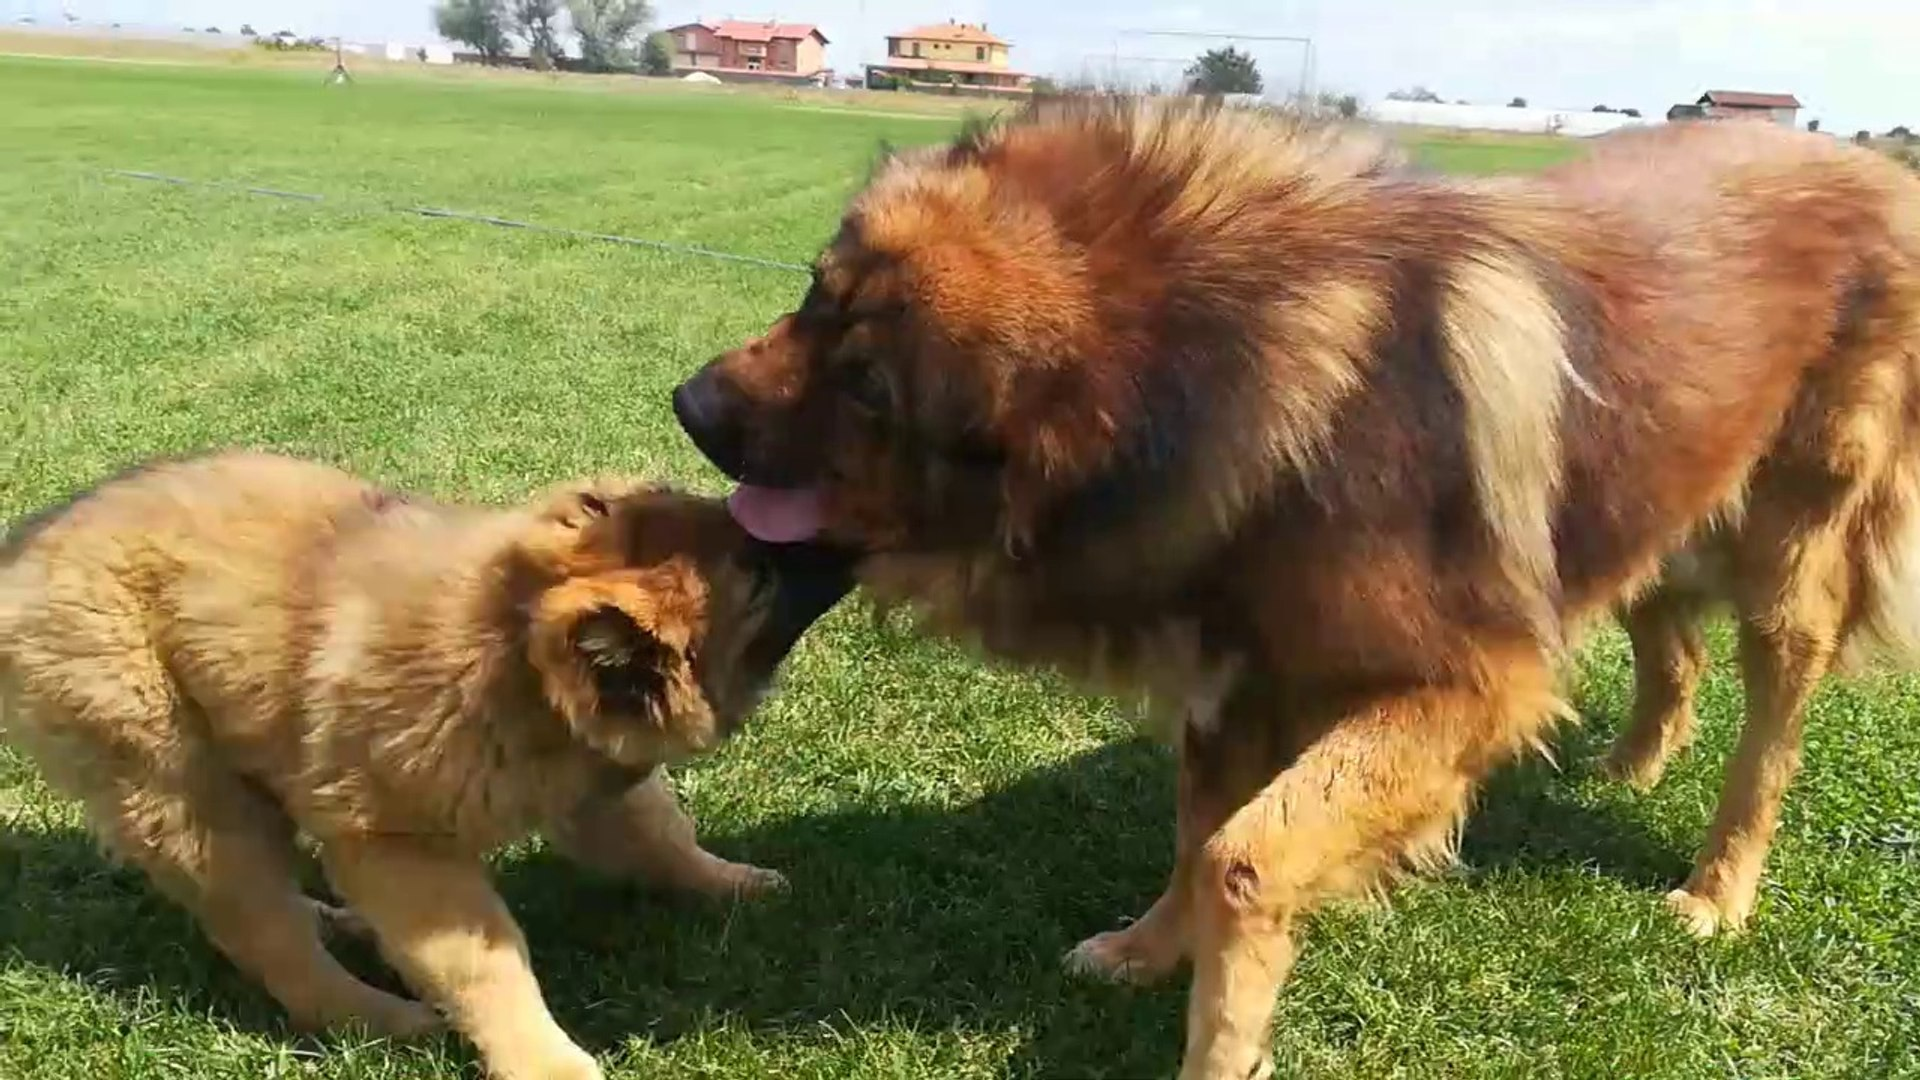 KAFKAS COBAN KOPEGi YAVRUSU VS - CAUCASiAN SHEPHERD DOG PUPPY VS